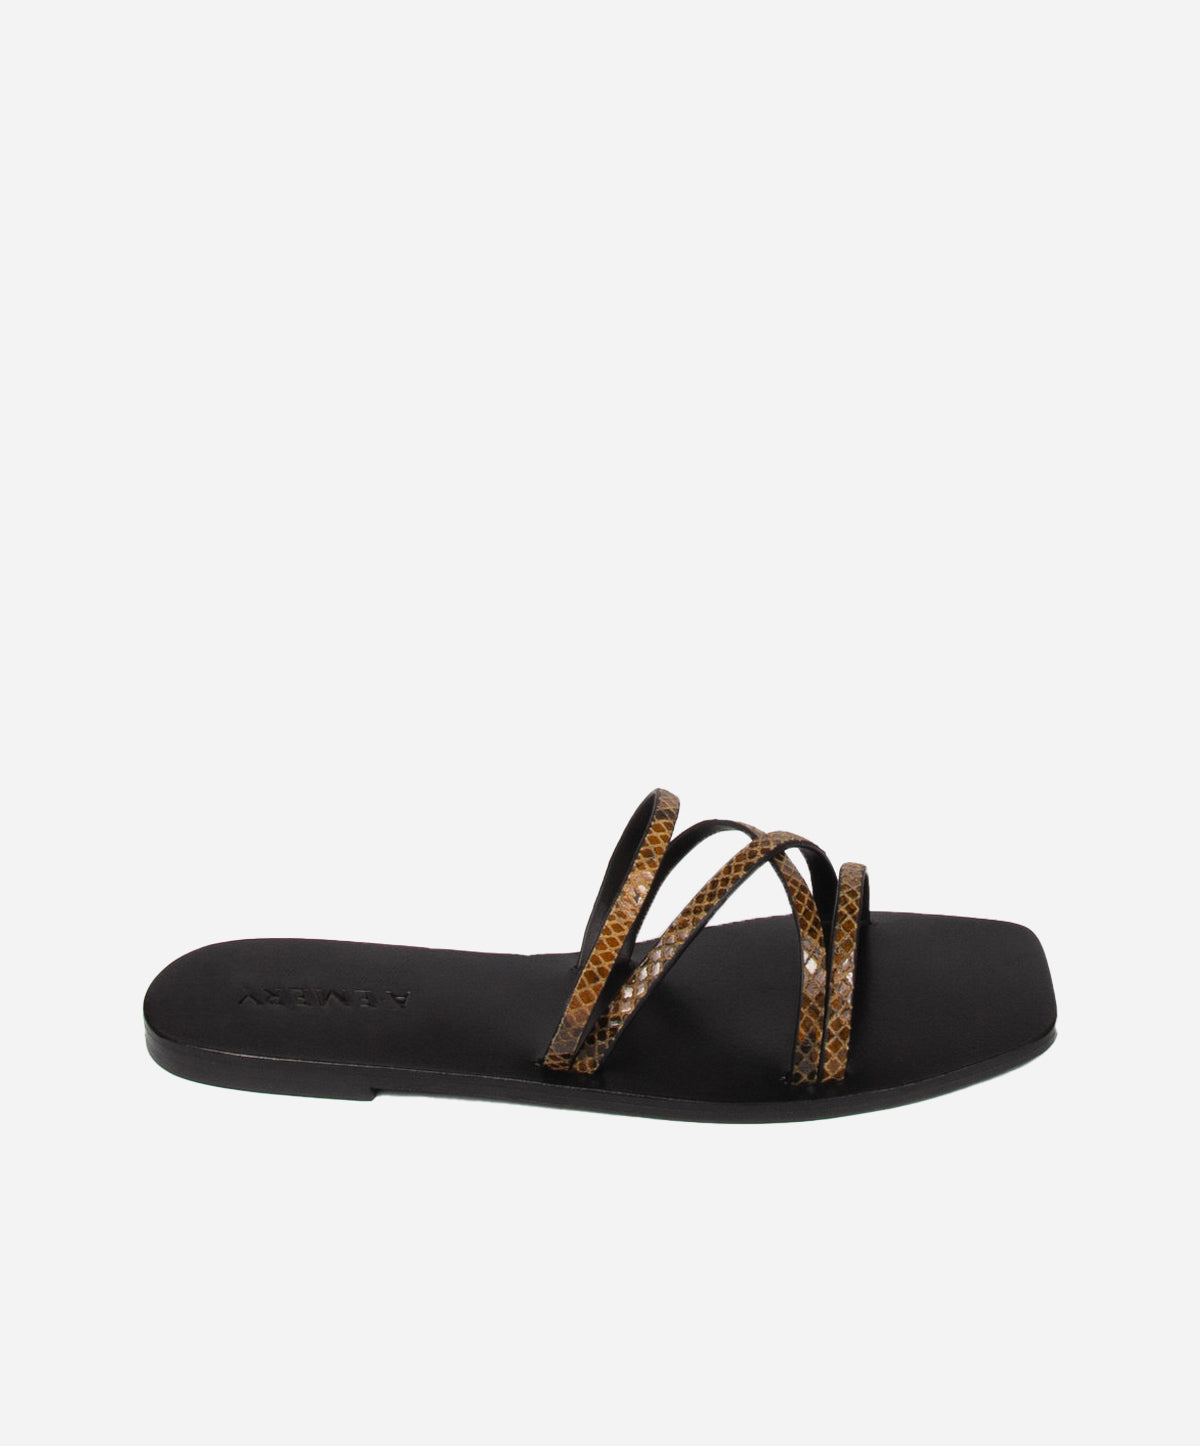 The Riley Sandal